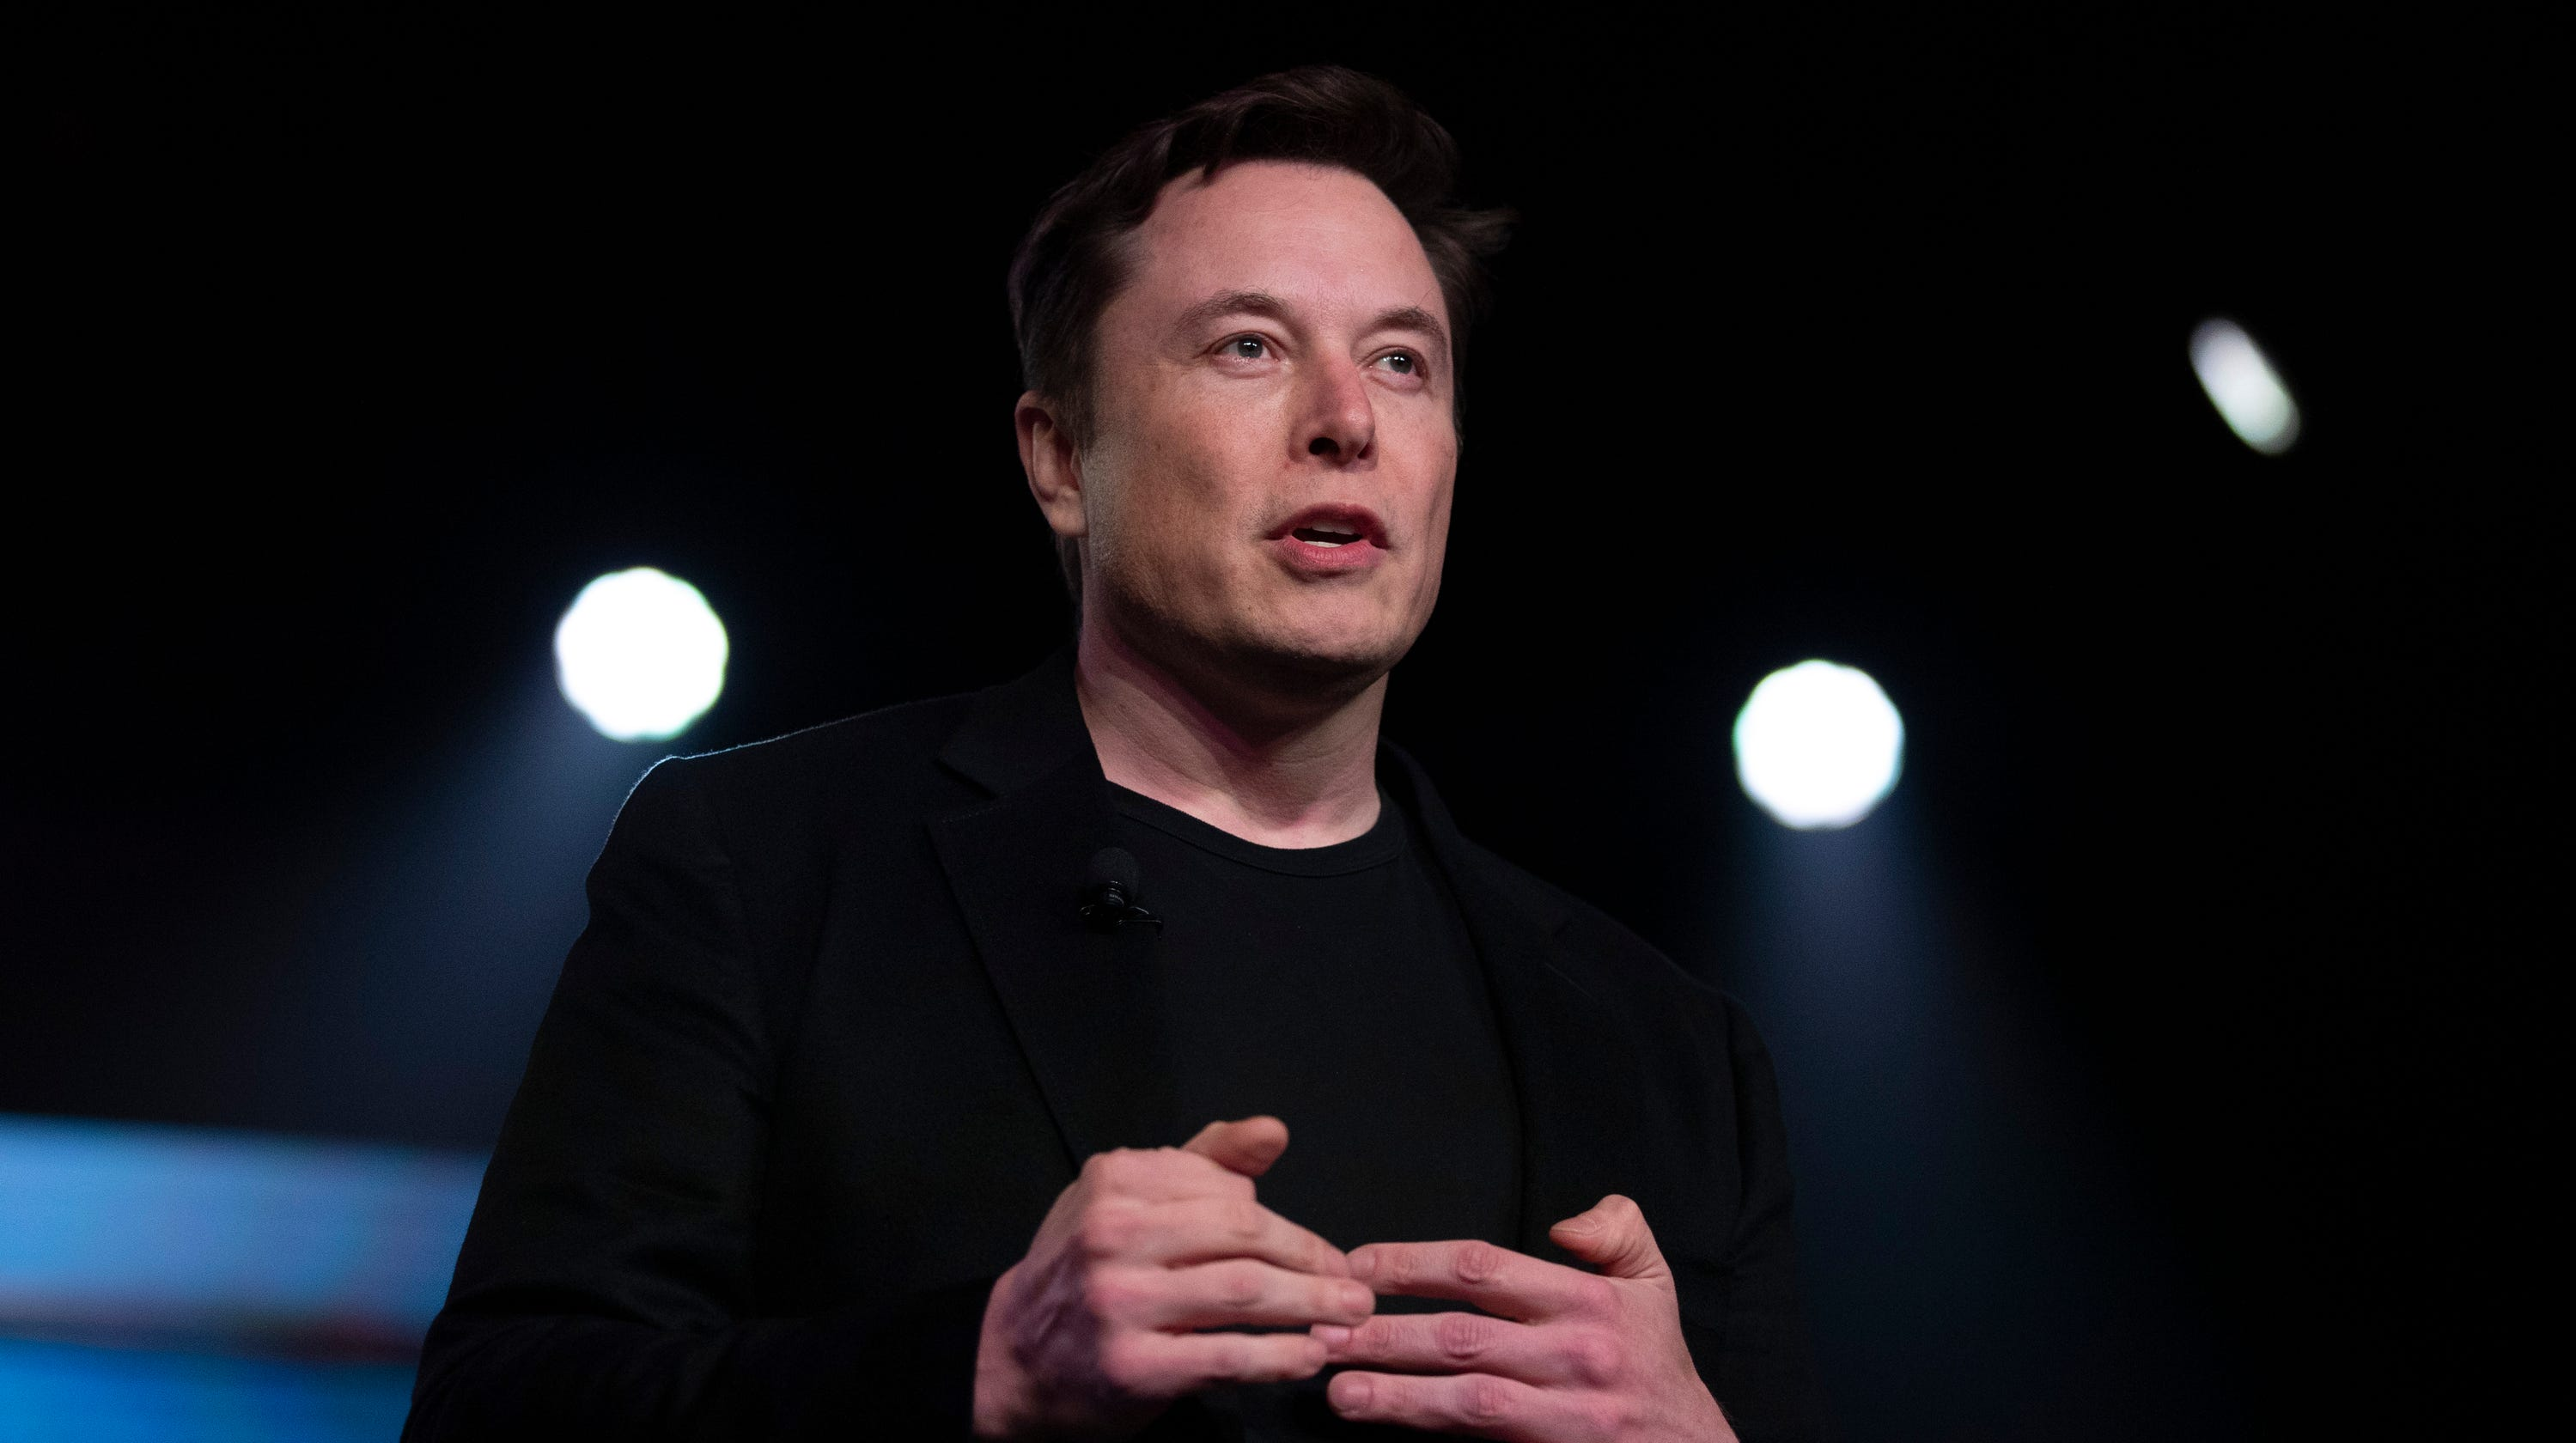 Elon Musk touts brain implant technology to treat health conditions, enable 'telepathy'